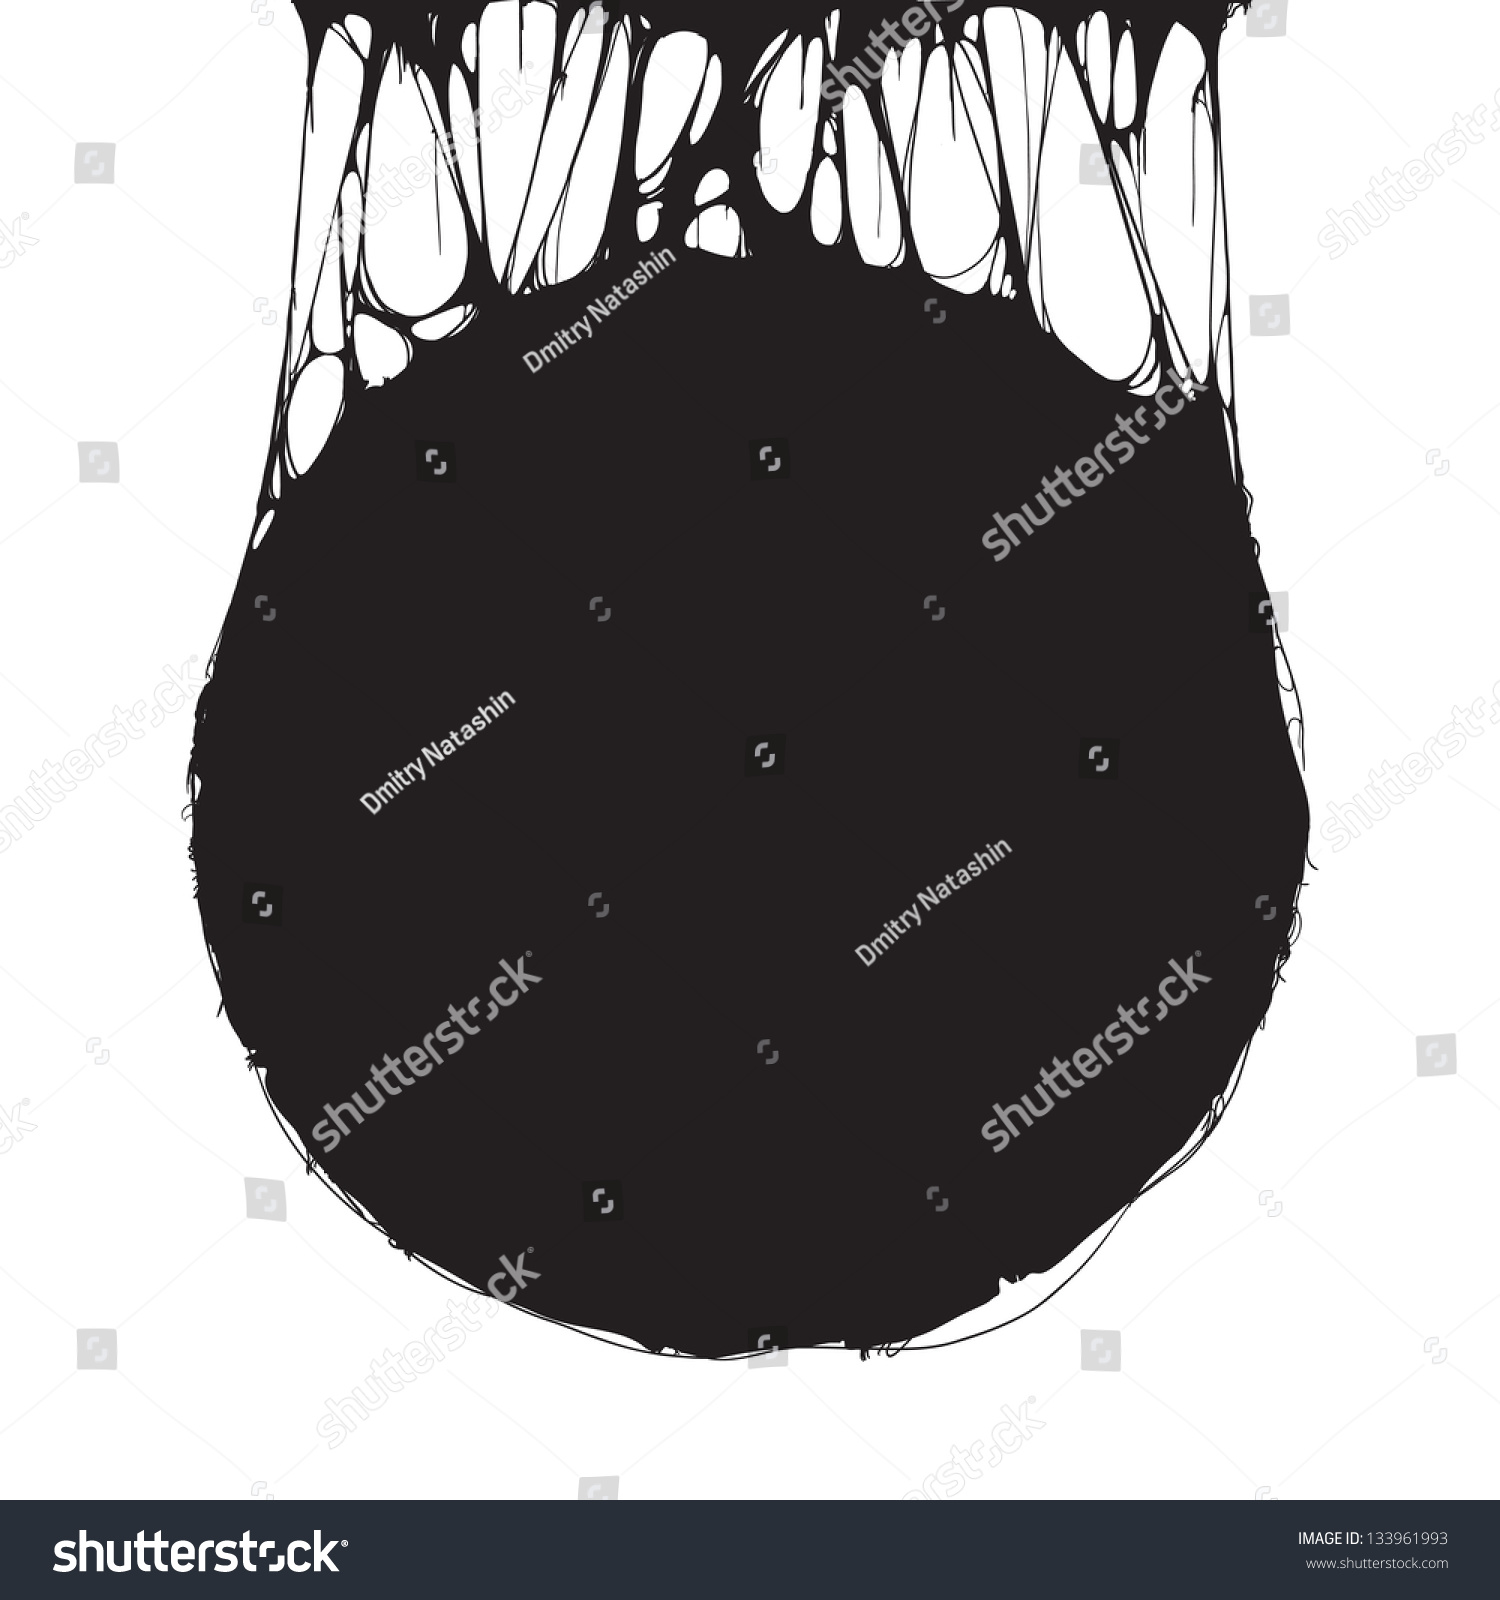 creepy slime halloween signboard black white stock vector